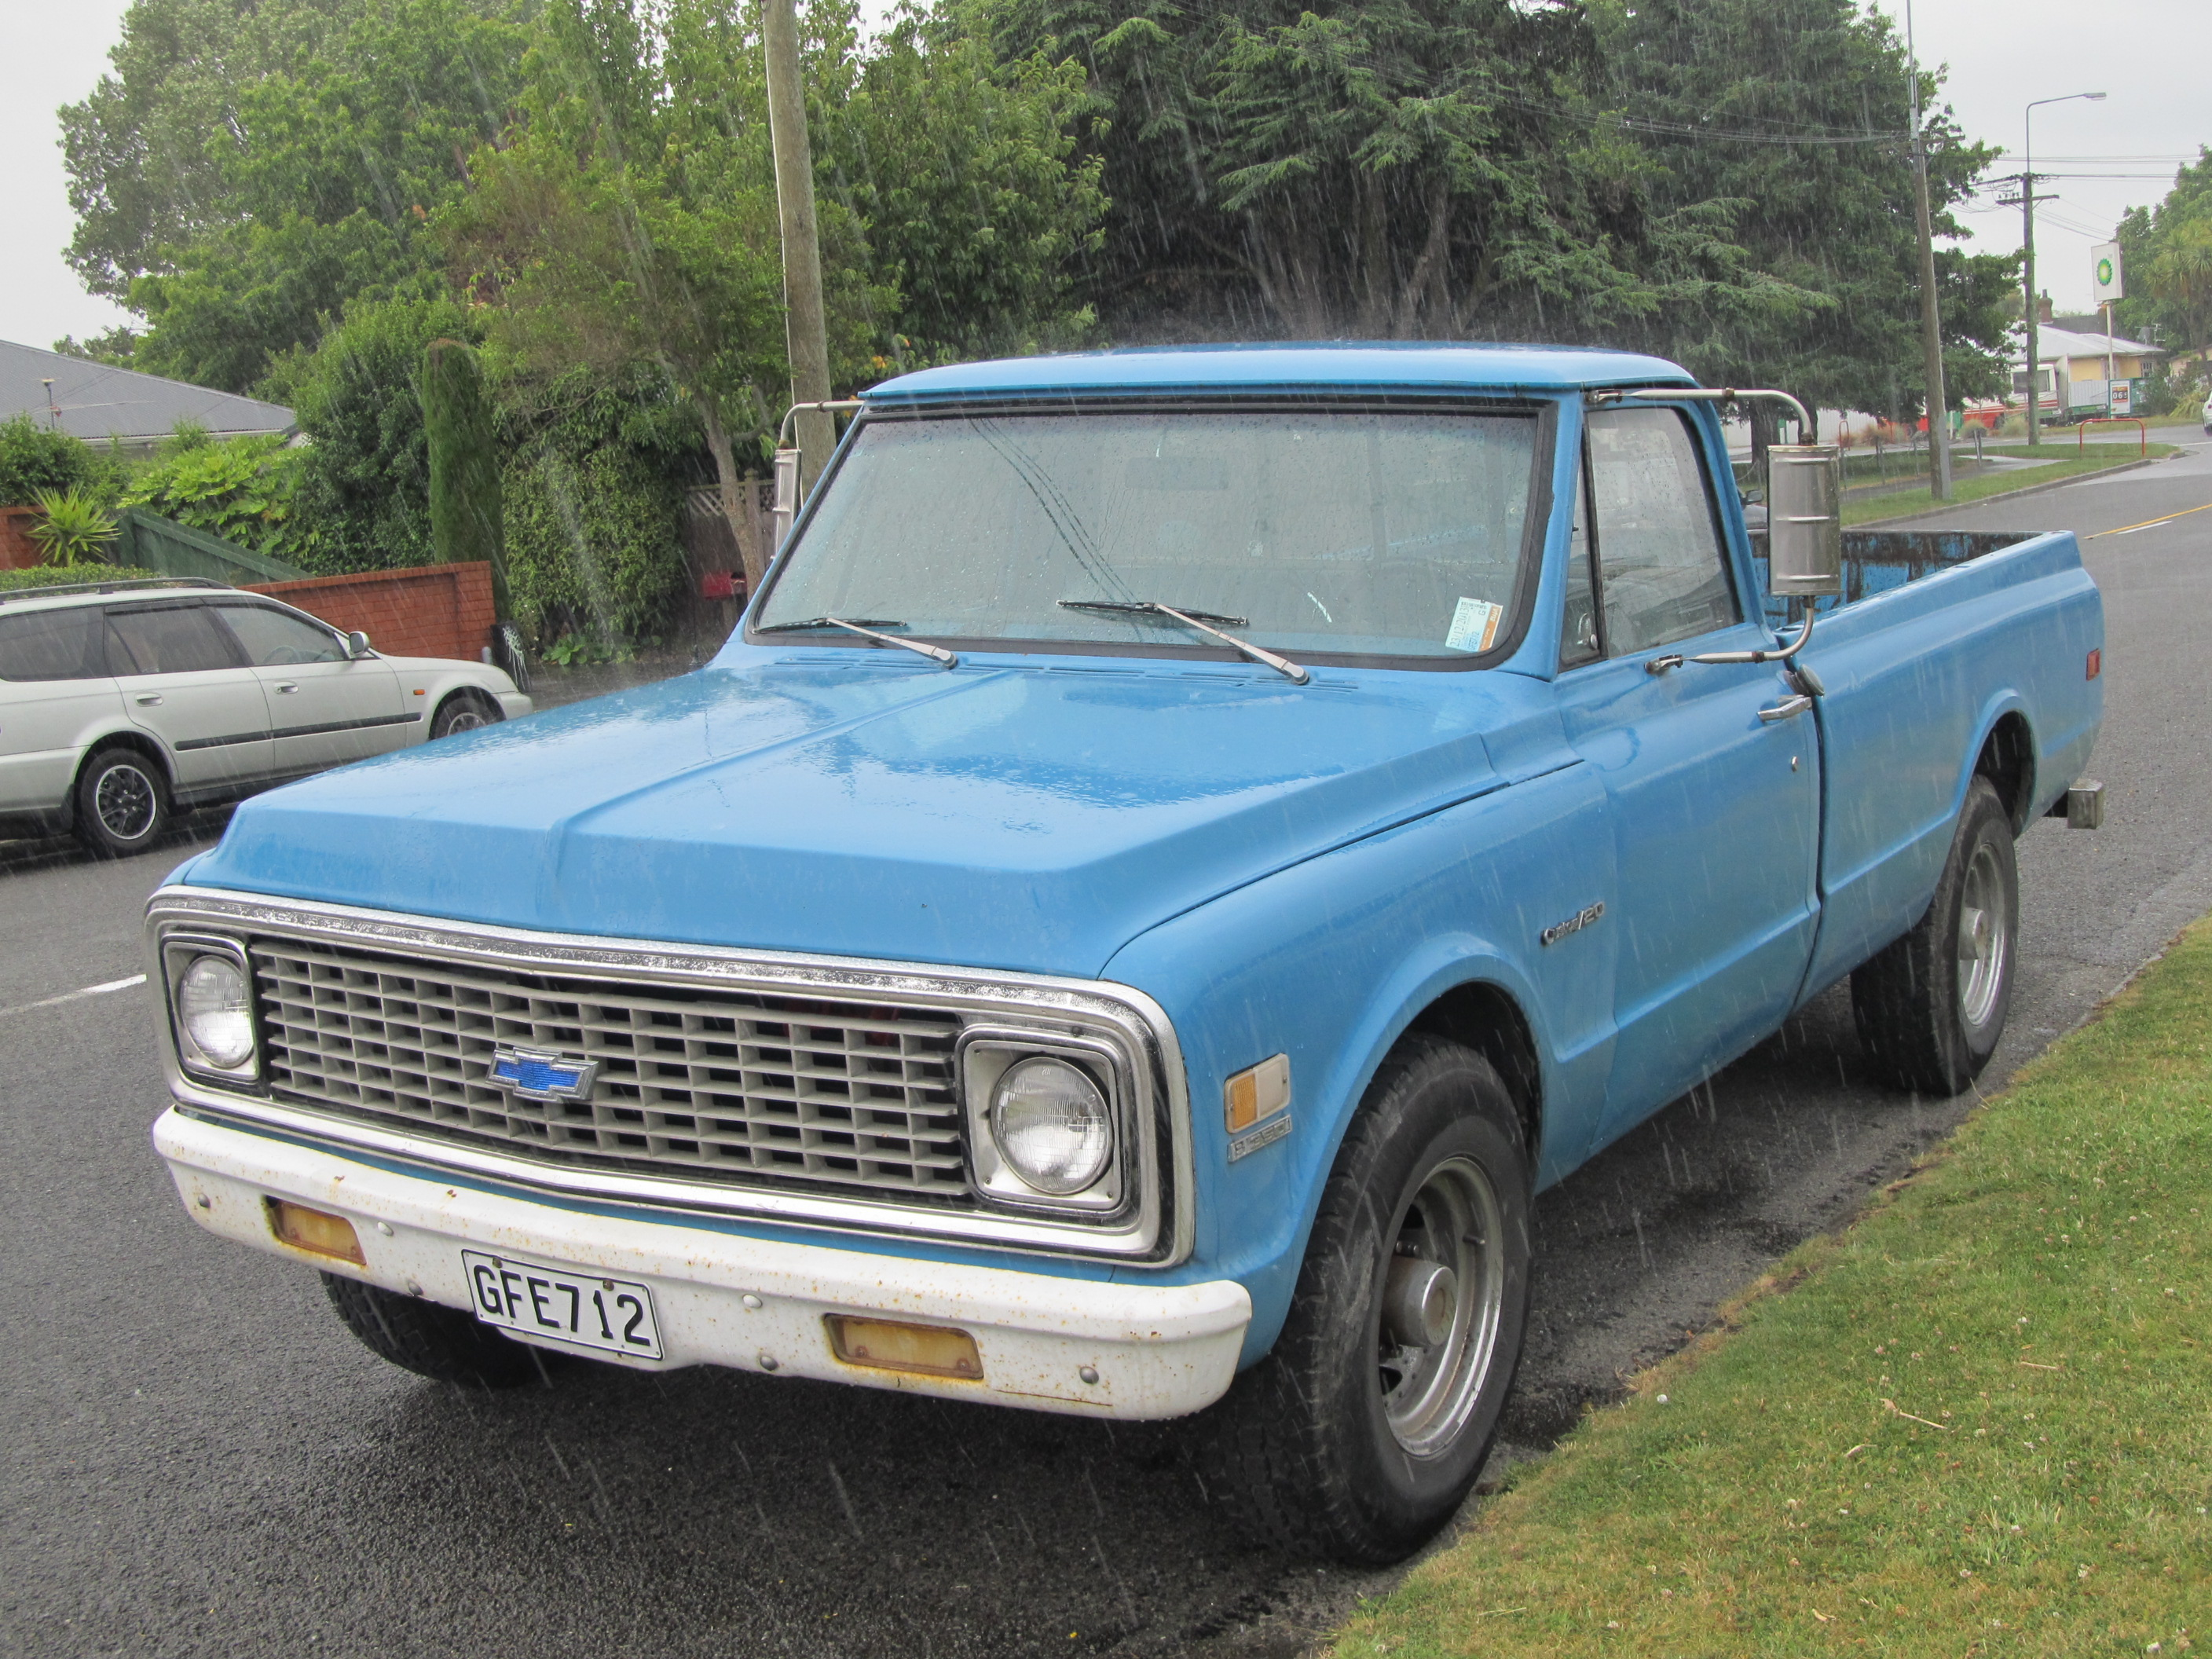 file 1971 chevrolet c-20 custom jpg